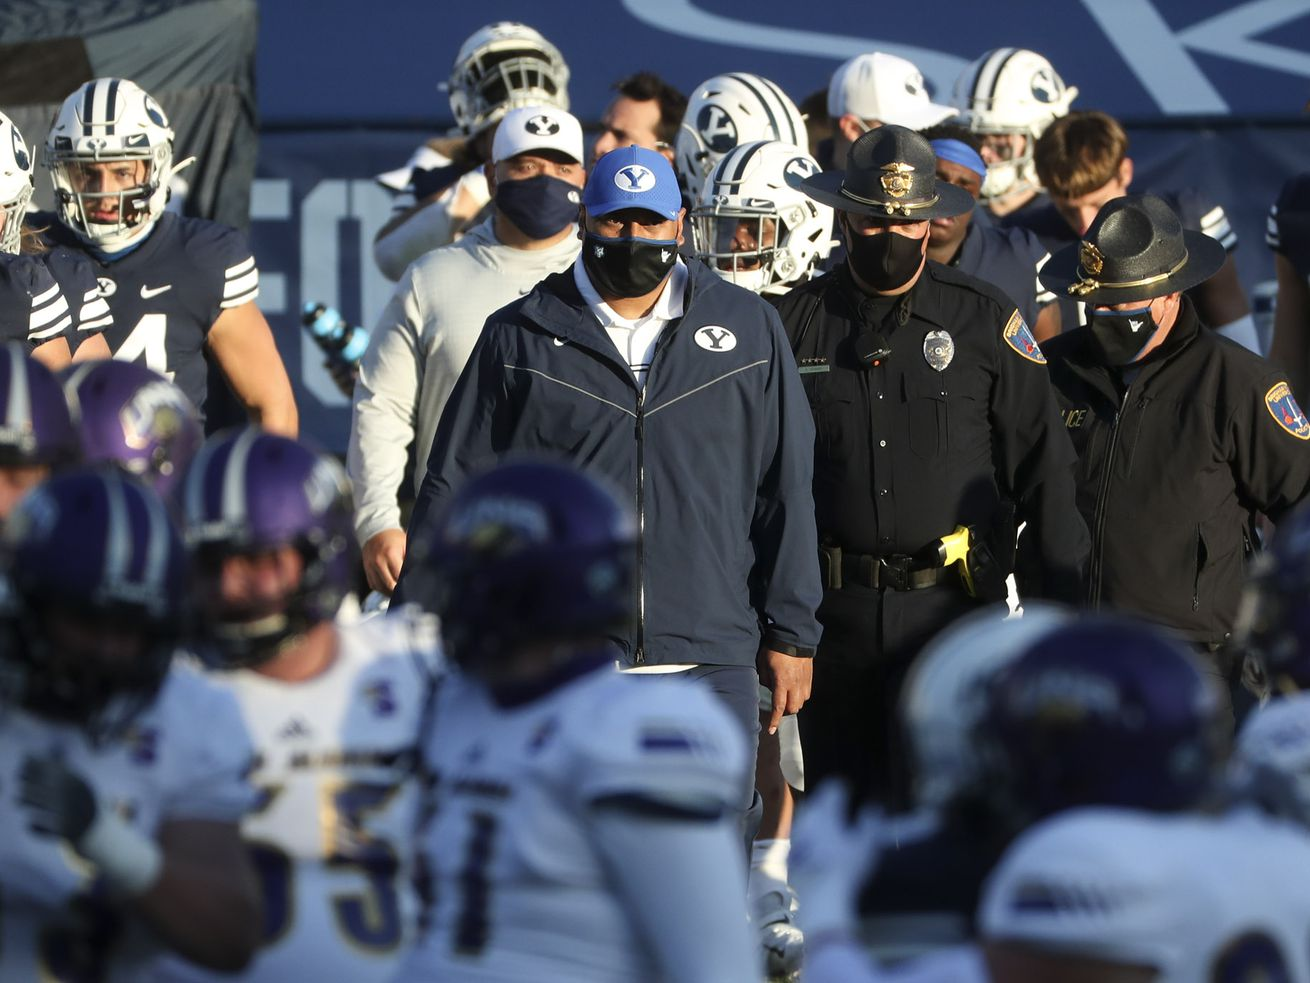 BYU head football coach Kalani Sitake, center, walks onto the field with his team after the Cougars defeated North Alabama in Provo on Saturday, Nov. 21, 2020.